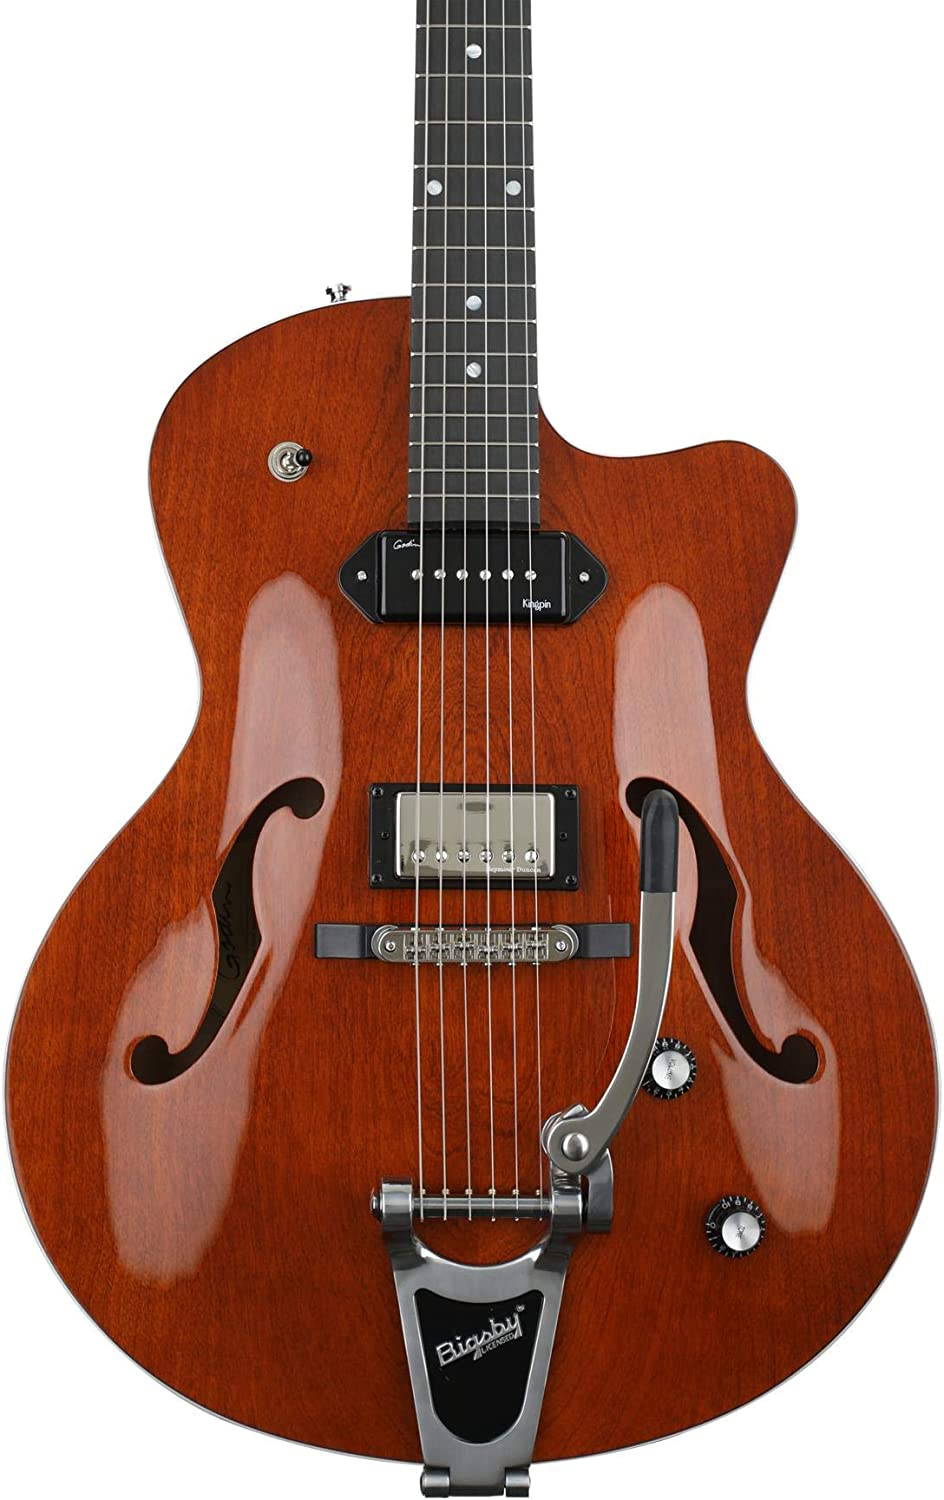 Godin 5th Ave Uptown Custom Havana Brown · Guitarra eléctrica